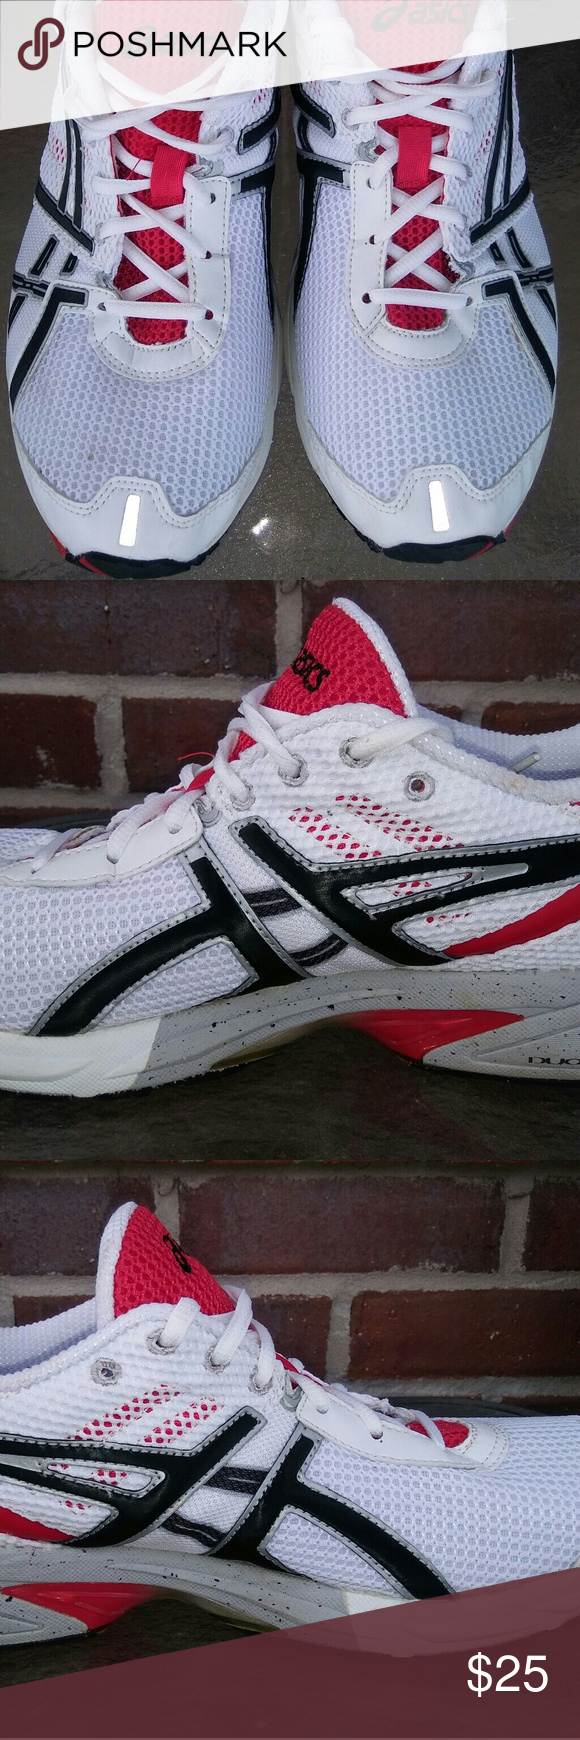 the latest 04265 40c0b Asics Gel DS Trainer White/Red 12 Sz 12.5 Asics Gel DS ...